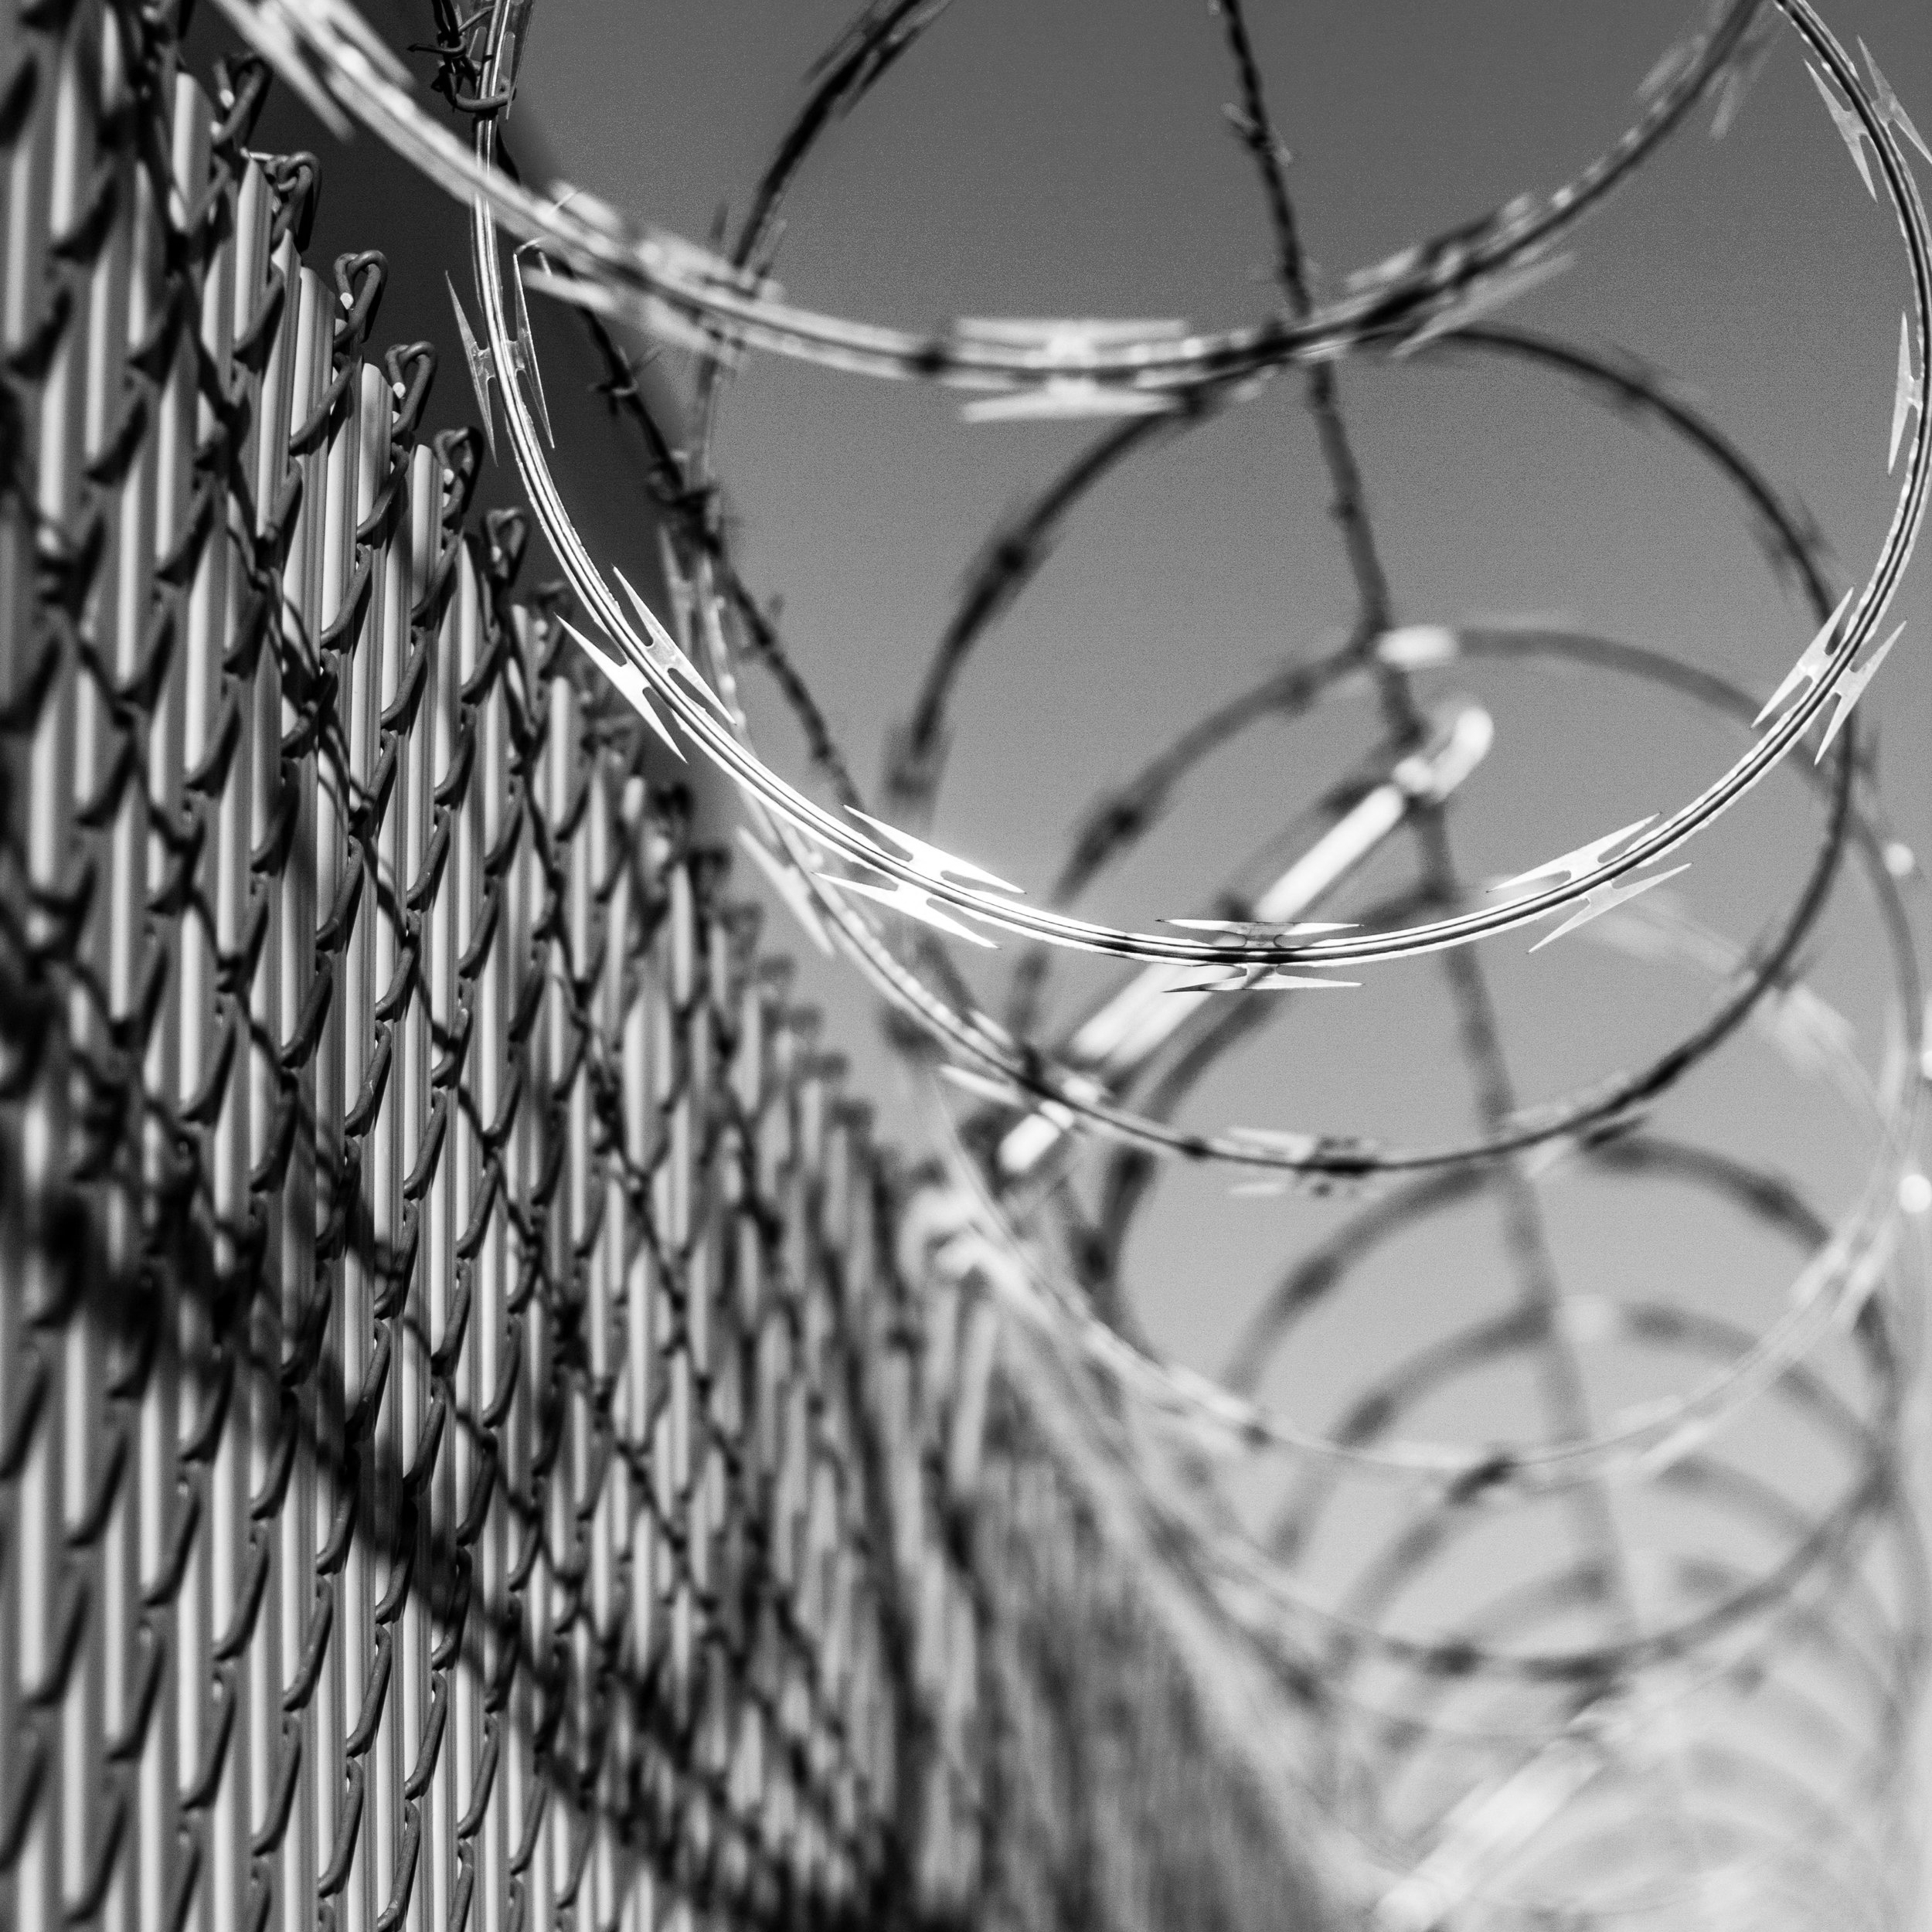 The United States has less than 5 percent of the world's population but almost 25 percent of the total prison population. A significant percentage of the more than 2 million Americans incarcerated today are nonviolent offenders. African American men are far more likely to be stopped and searched by police, charged with crimes, and sentenced to longer prison terms than white men found guilty of the same offenses.  We devote far too many resources on over-incarceration and misguided crime policies, money that could be better spent providing education, training, and jobs to those who might otherwise get lost in the criminal justice system.  We must do a better job from the state to the local level in bringing law enforcement agencies together to define the use and limits of police force. In addition, I will work to create policy for increased community engagement from law enforcement agencies in order to develop bonds of trust in our neighborhoods.  We don't need to keep incarcerating the masses. Instead I advocate for smarter gun control as well as stronger policies to prevent domestic violence and sexual assault.  Reforming our criminal justice system is paramount to helping advance opportunities for our most challenging communities. I support Elimination of Mandatory Minimums, Legalized Cannabis Industry, and creating a Prince George's County Community Police Review Board with authority to remove officers who've abused their power.    Cannabis     Far too many of our neighbors are still being incarcerated for nonviolent crimes, including for possessing small amounts of marijuana. I fully support the legalization of medicinal and recreational marijuana. But for where it is not legal, I support the popular policy of cities to cite and release in these instances.  The medical breakthroughs being made in cellular cancer cells by cannabinoids found in Marijuana is too much to ignore. Cancer patients in particular deserve access to alternative treatment methods when all else fails.  Recreational marijuana provides a safe alternative to drinking and other drugs like opioids.  States that have legalized marijuana are reporting significant reductions in incidents of drunk driving and underage drinking.